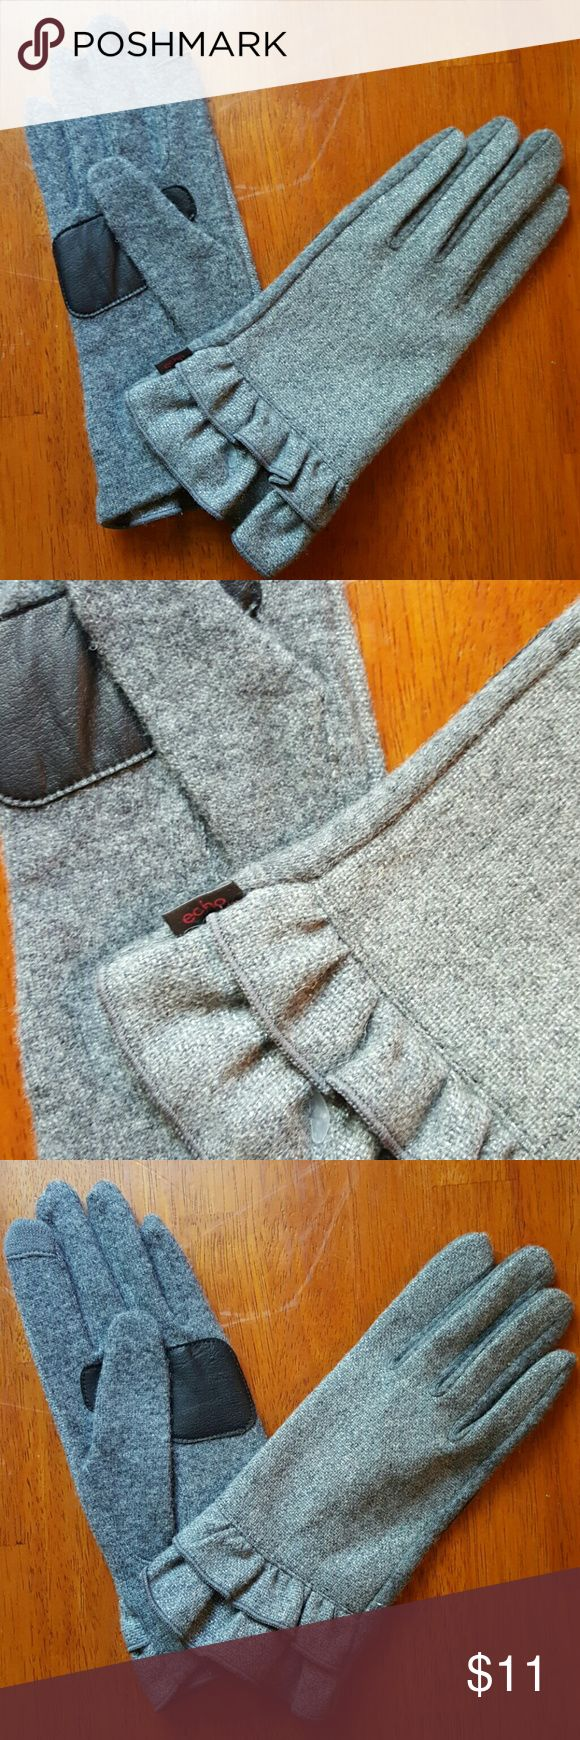 Echo womens gloves Gray with silver sparkles.faux leather palm..outside is wool, polyesyer, and nylon mix....new without tag Echo Accessories Gloves & Mittens